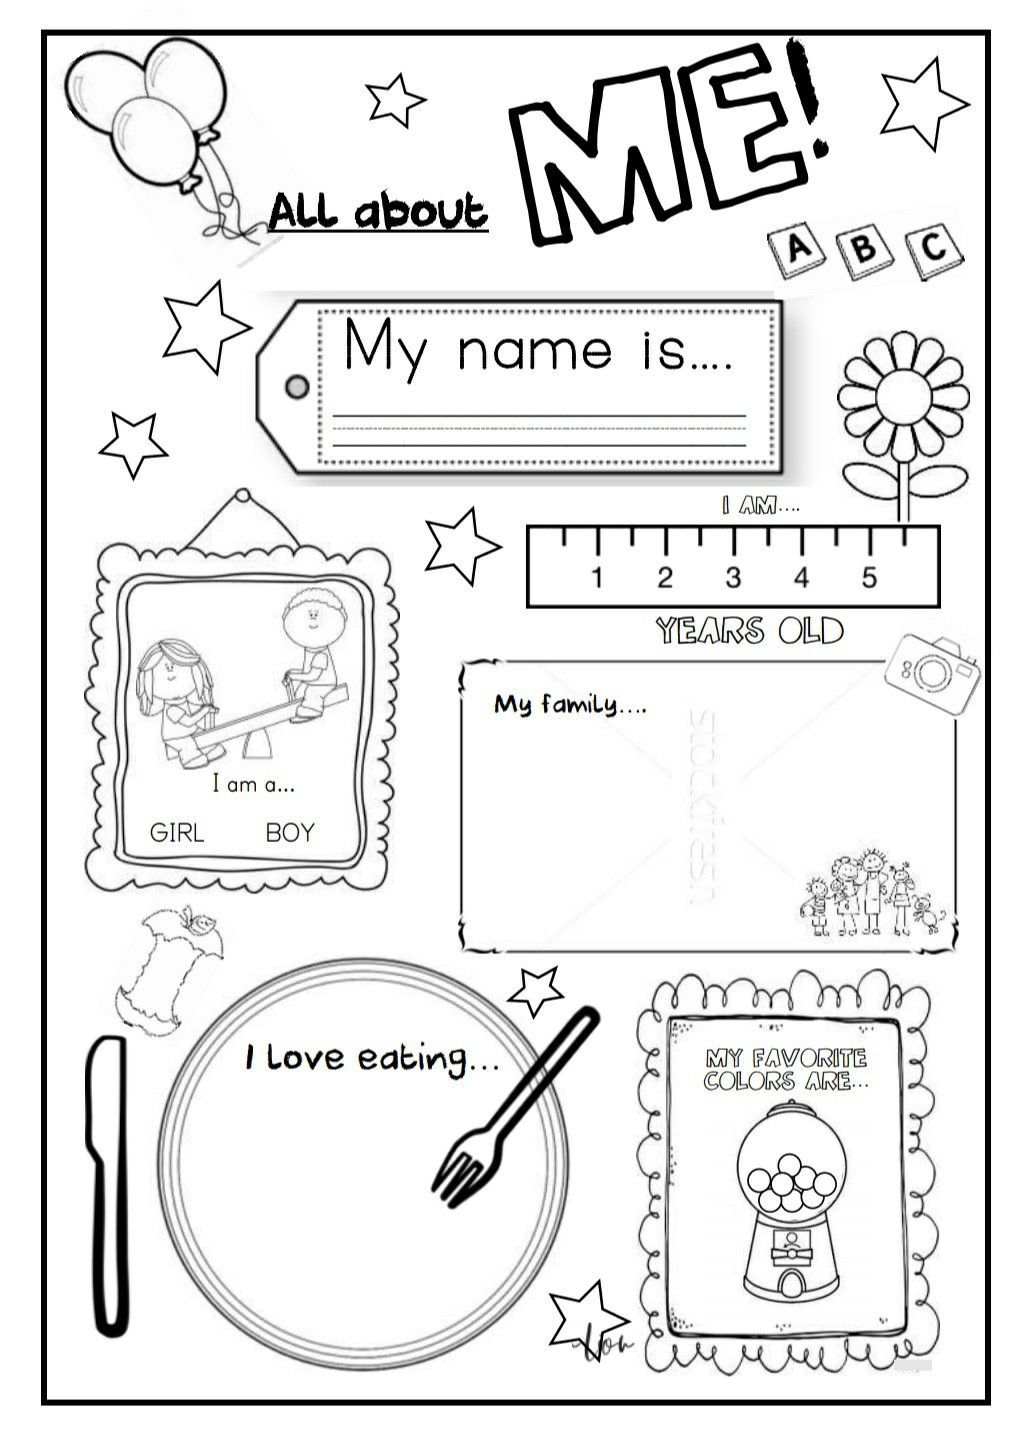 All About Me In 2020 All About Me Preschool Online Kindergarten Kindergarten Names In 2021 All About Me Preschool Kindergarten Worksheets Online Kindergarten